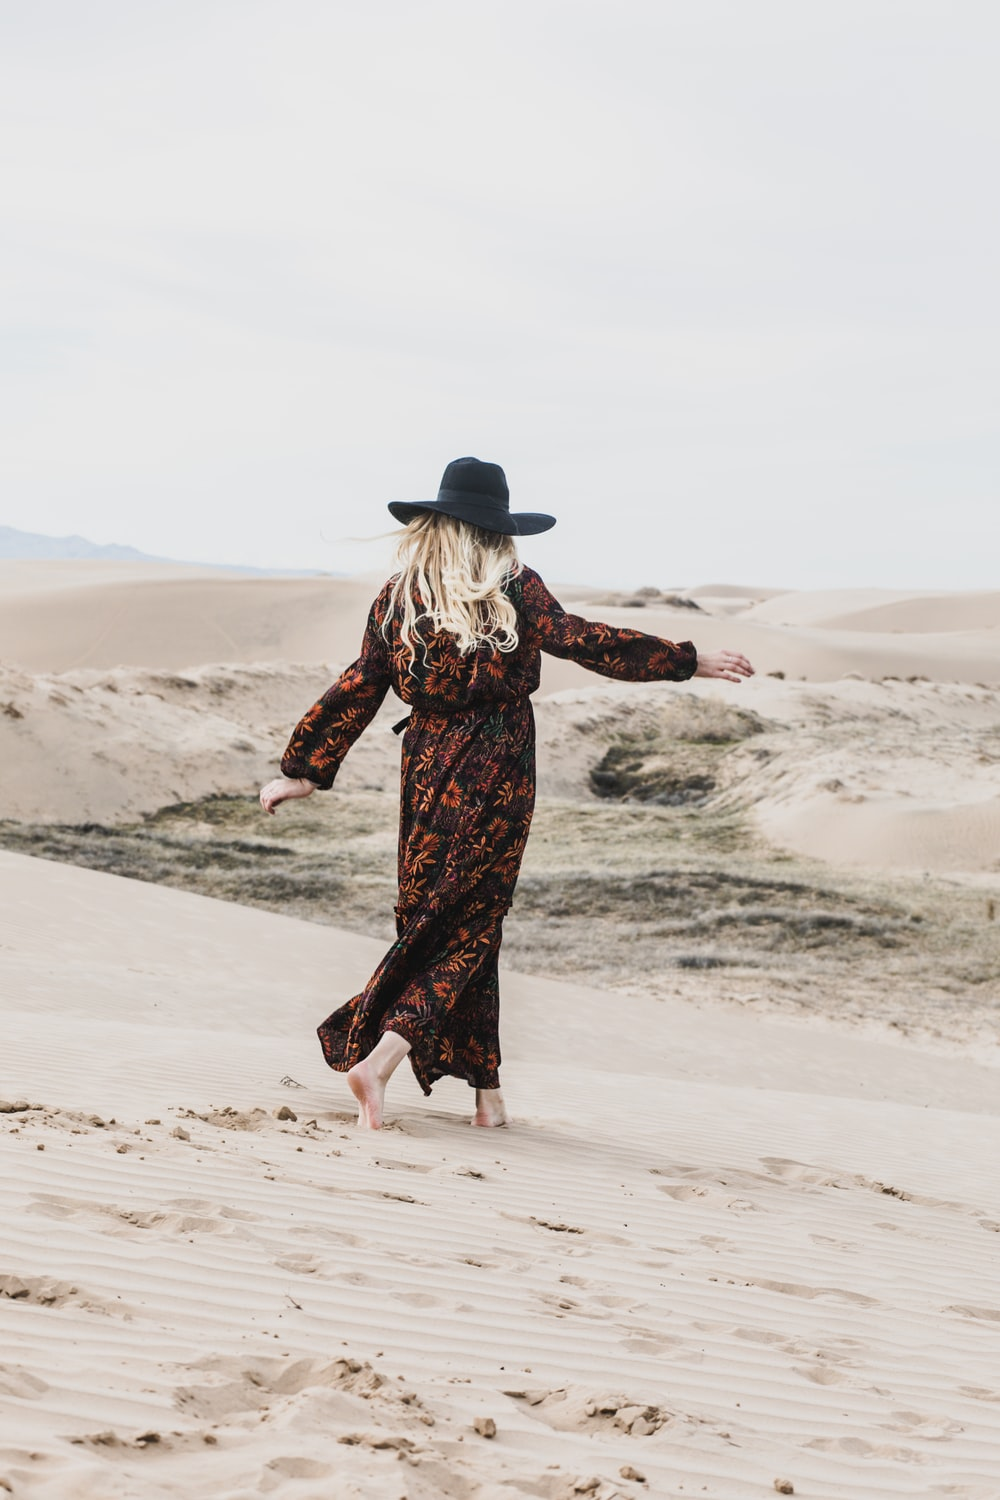 photo of person wearing brown and orange floral maxi dress walking barefooted along deserted land